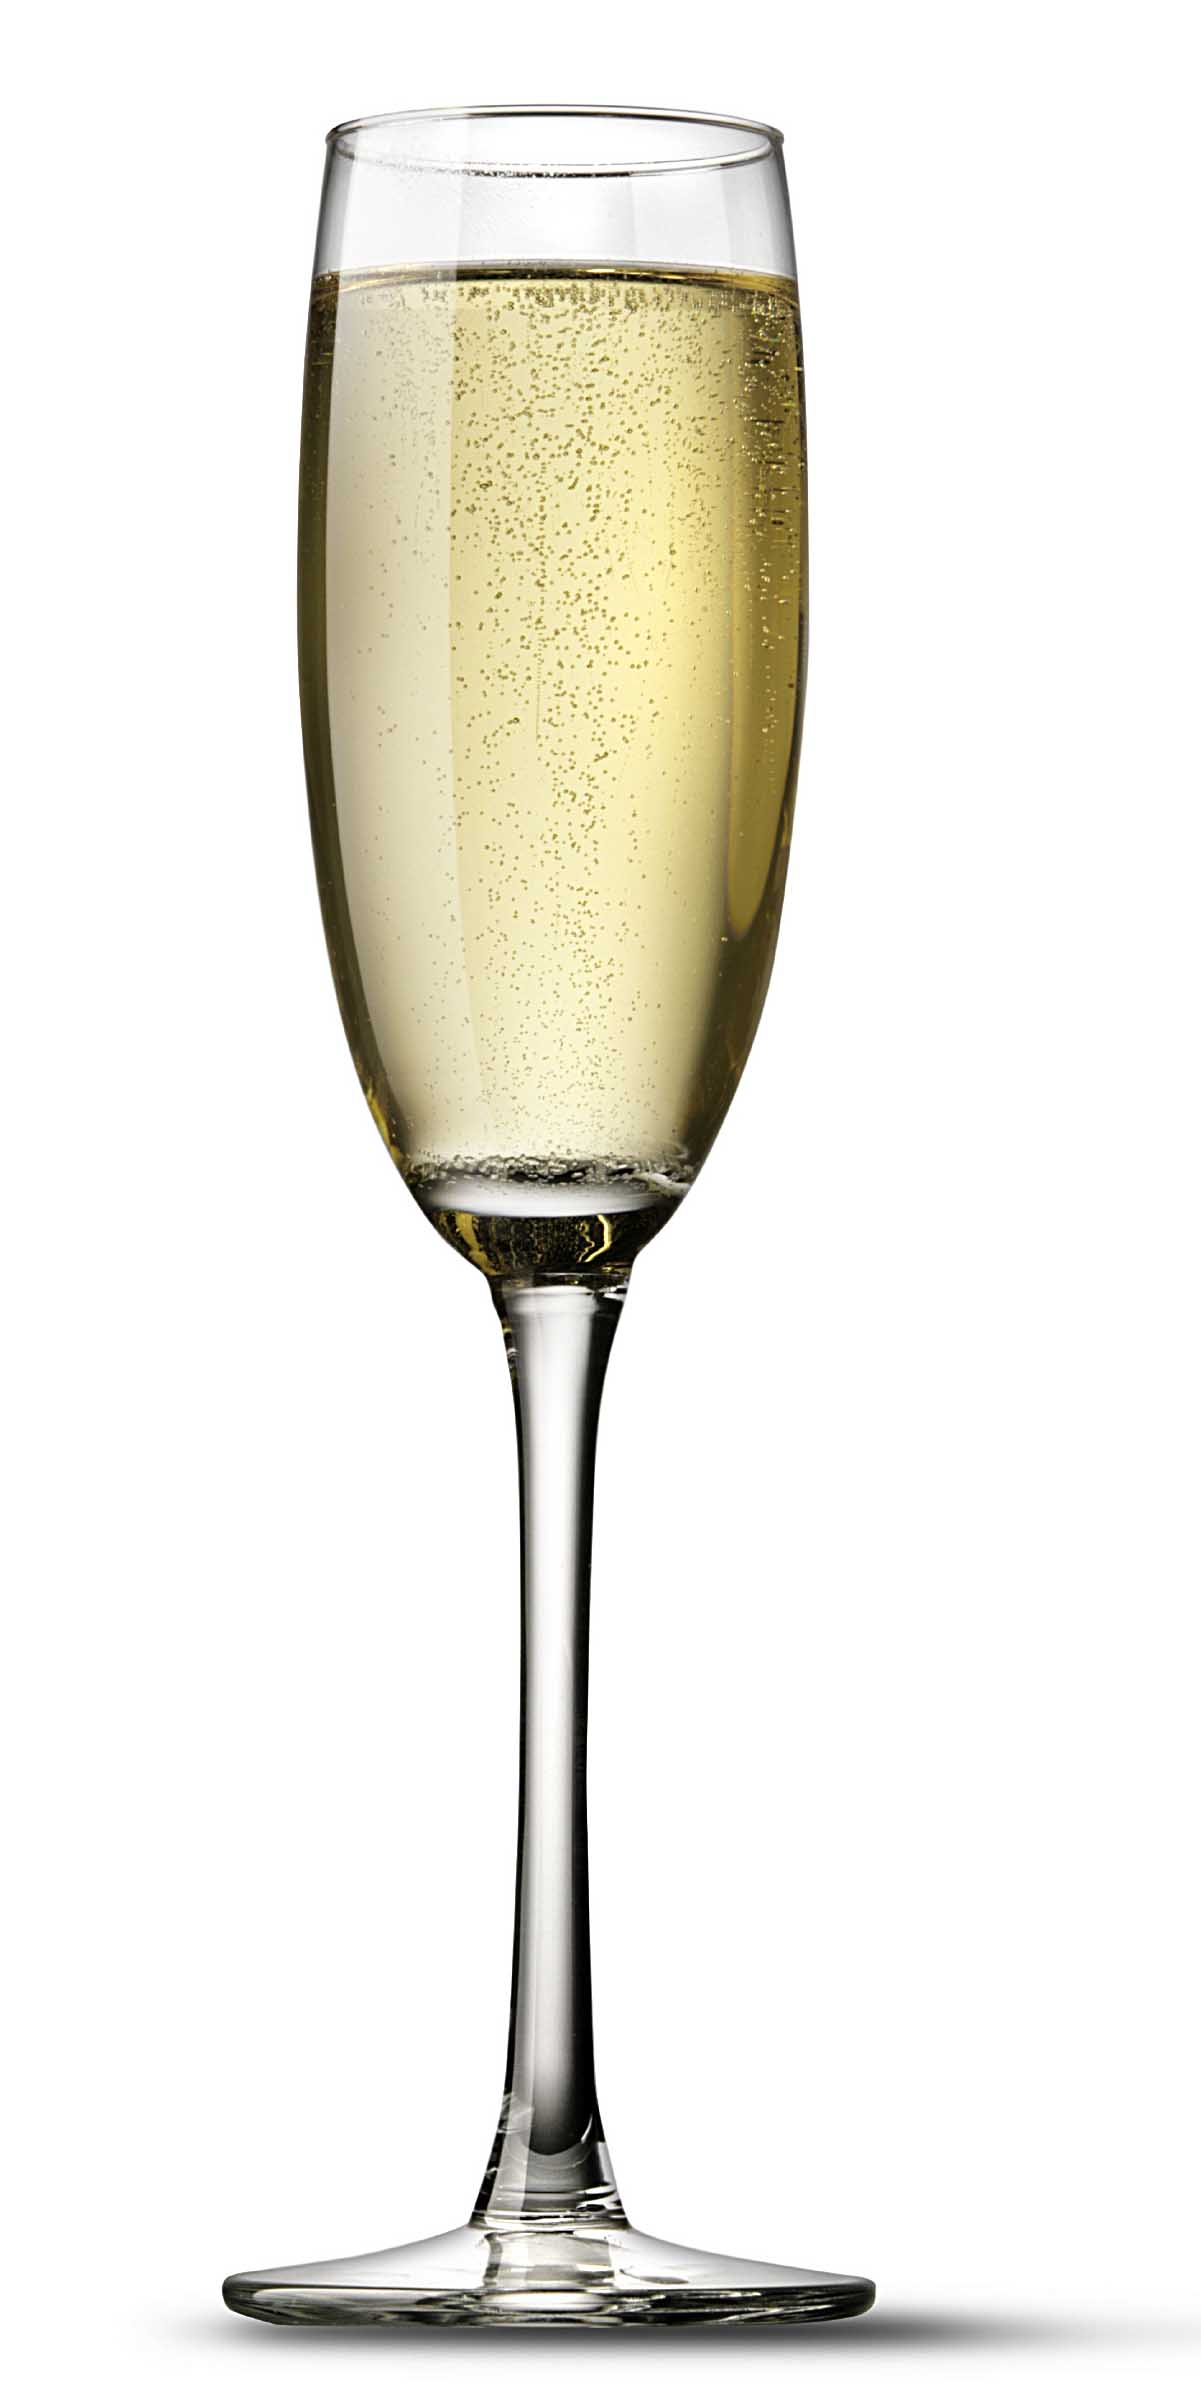 Champagne Glass With Bubbles Clip Art Picture of champagne glass